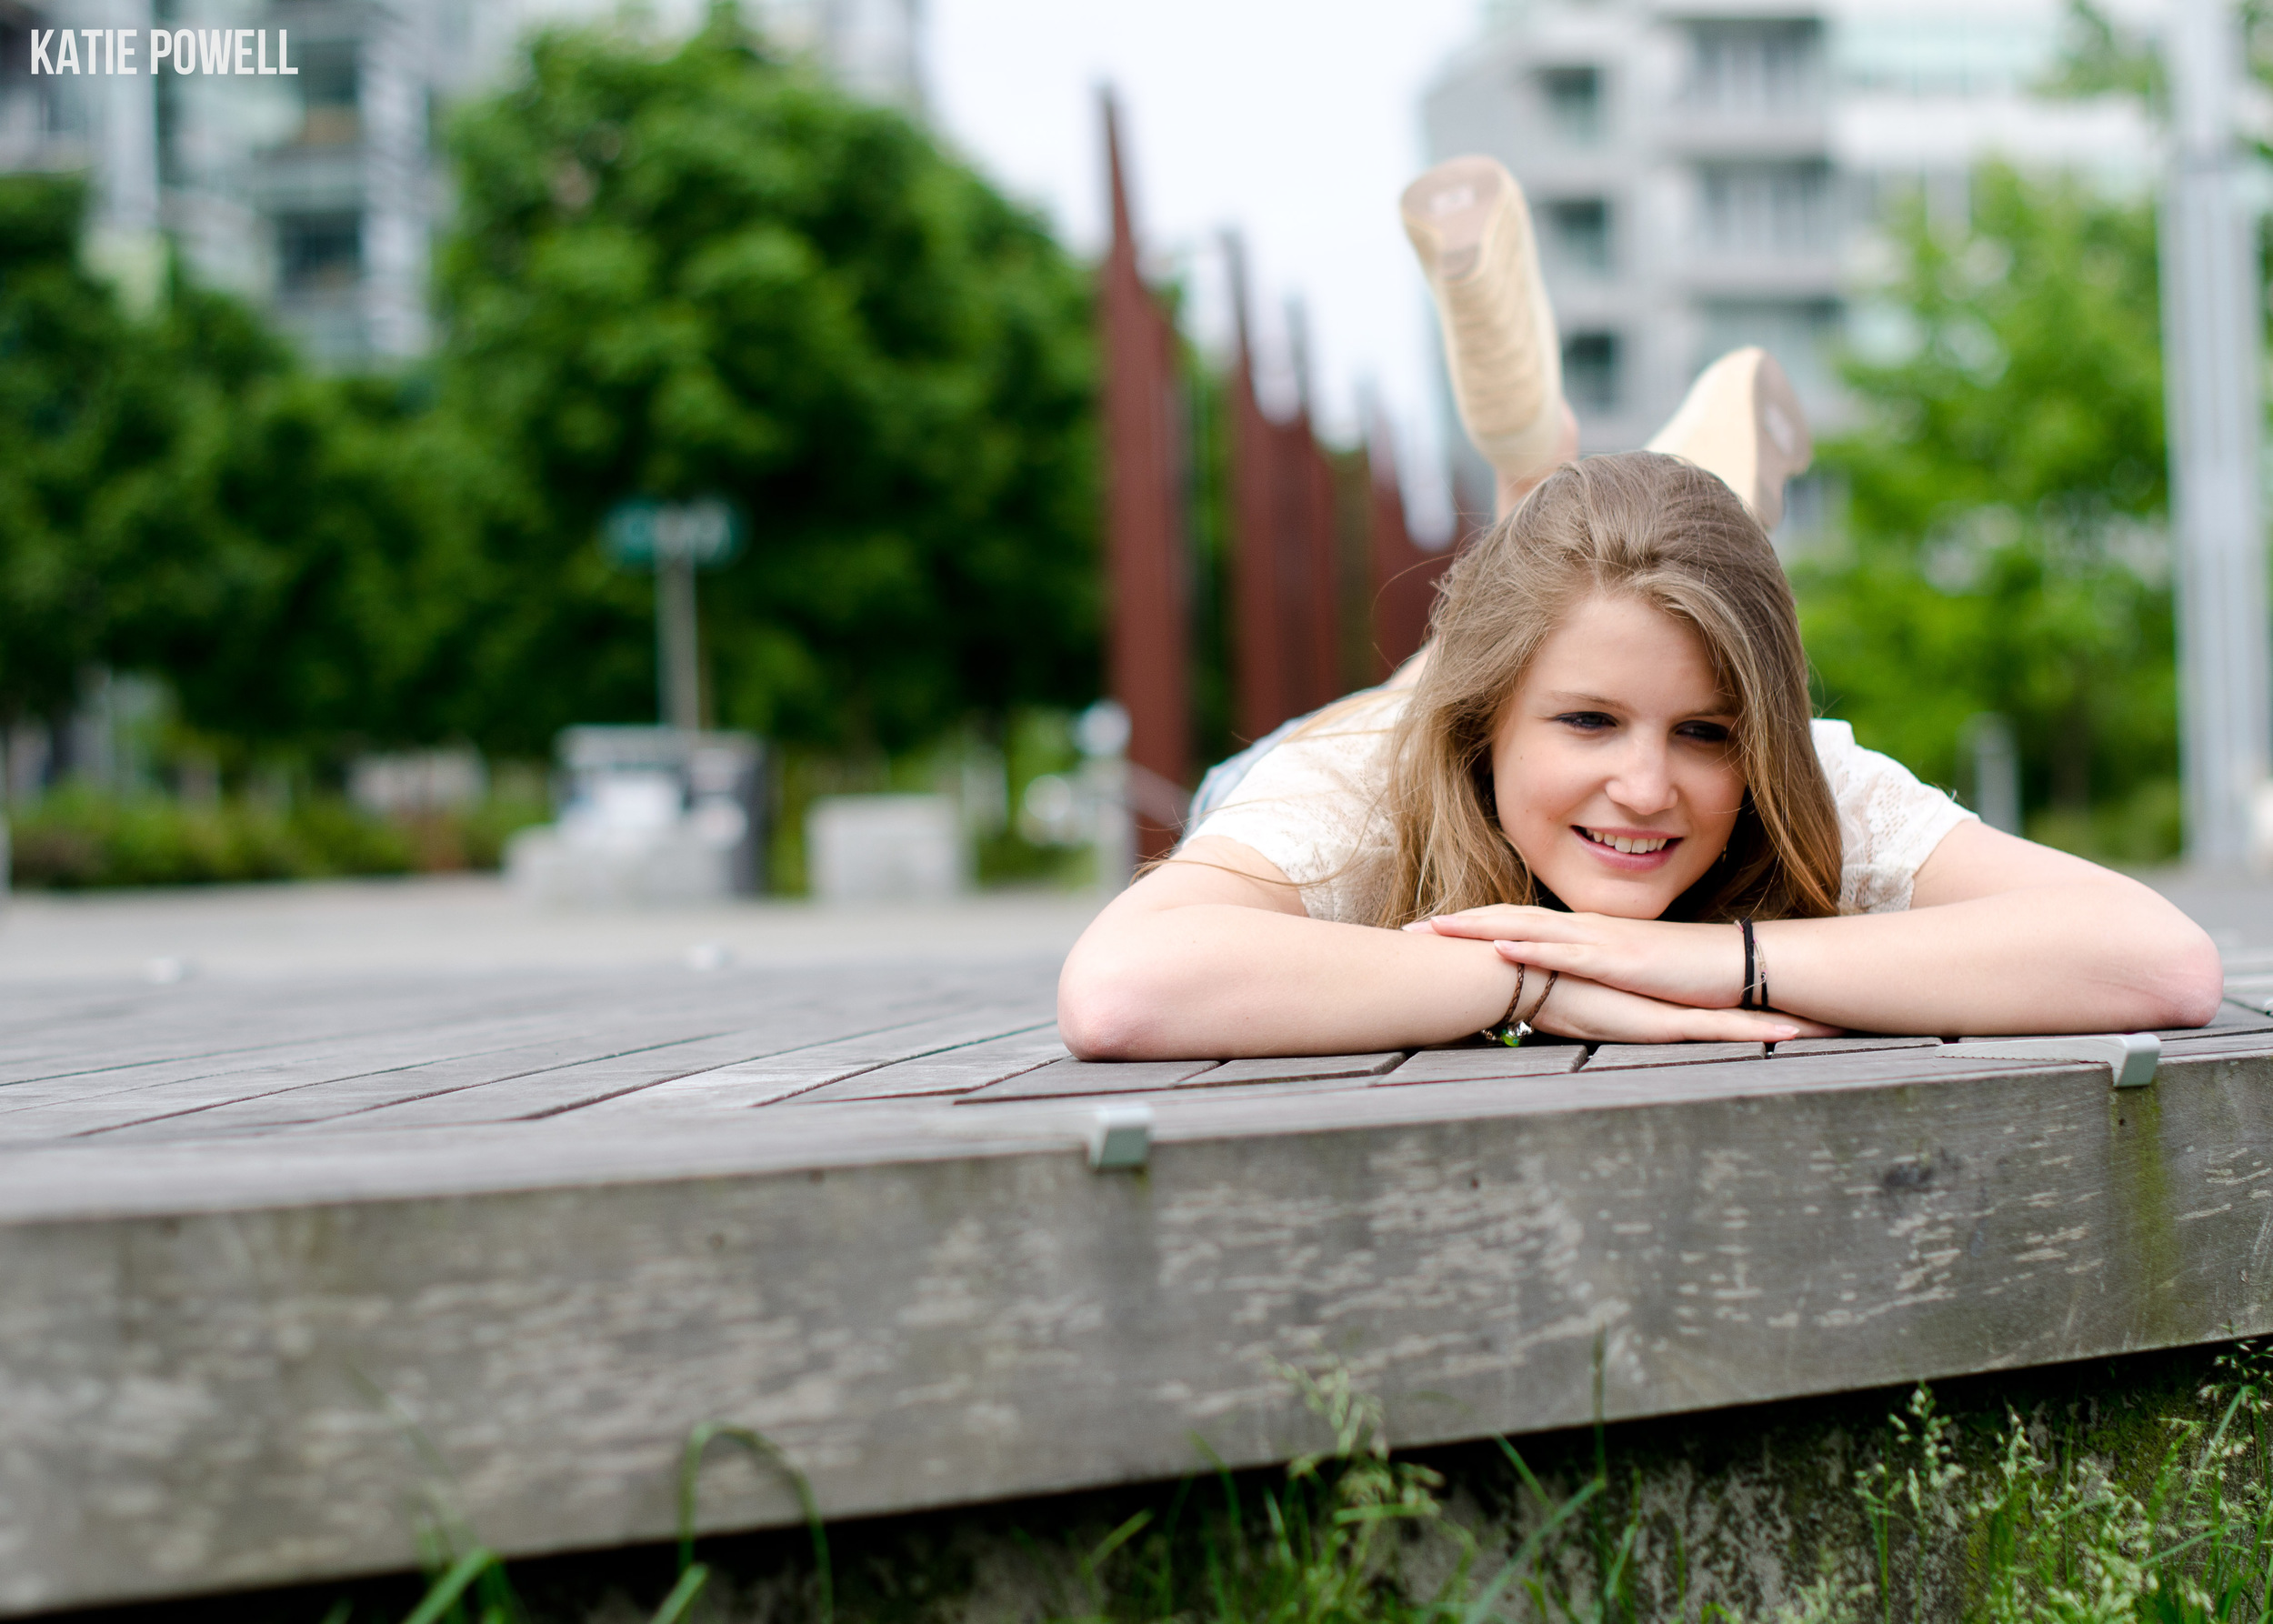 Alice_Olympic Village_Portraits_Vancouver_Katie Powell Photography-2.jpg